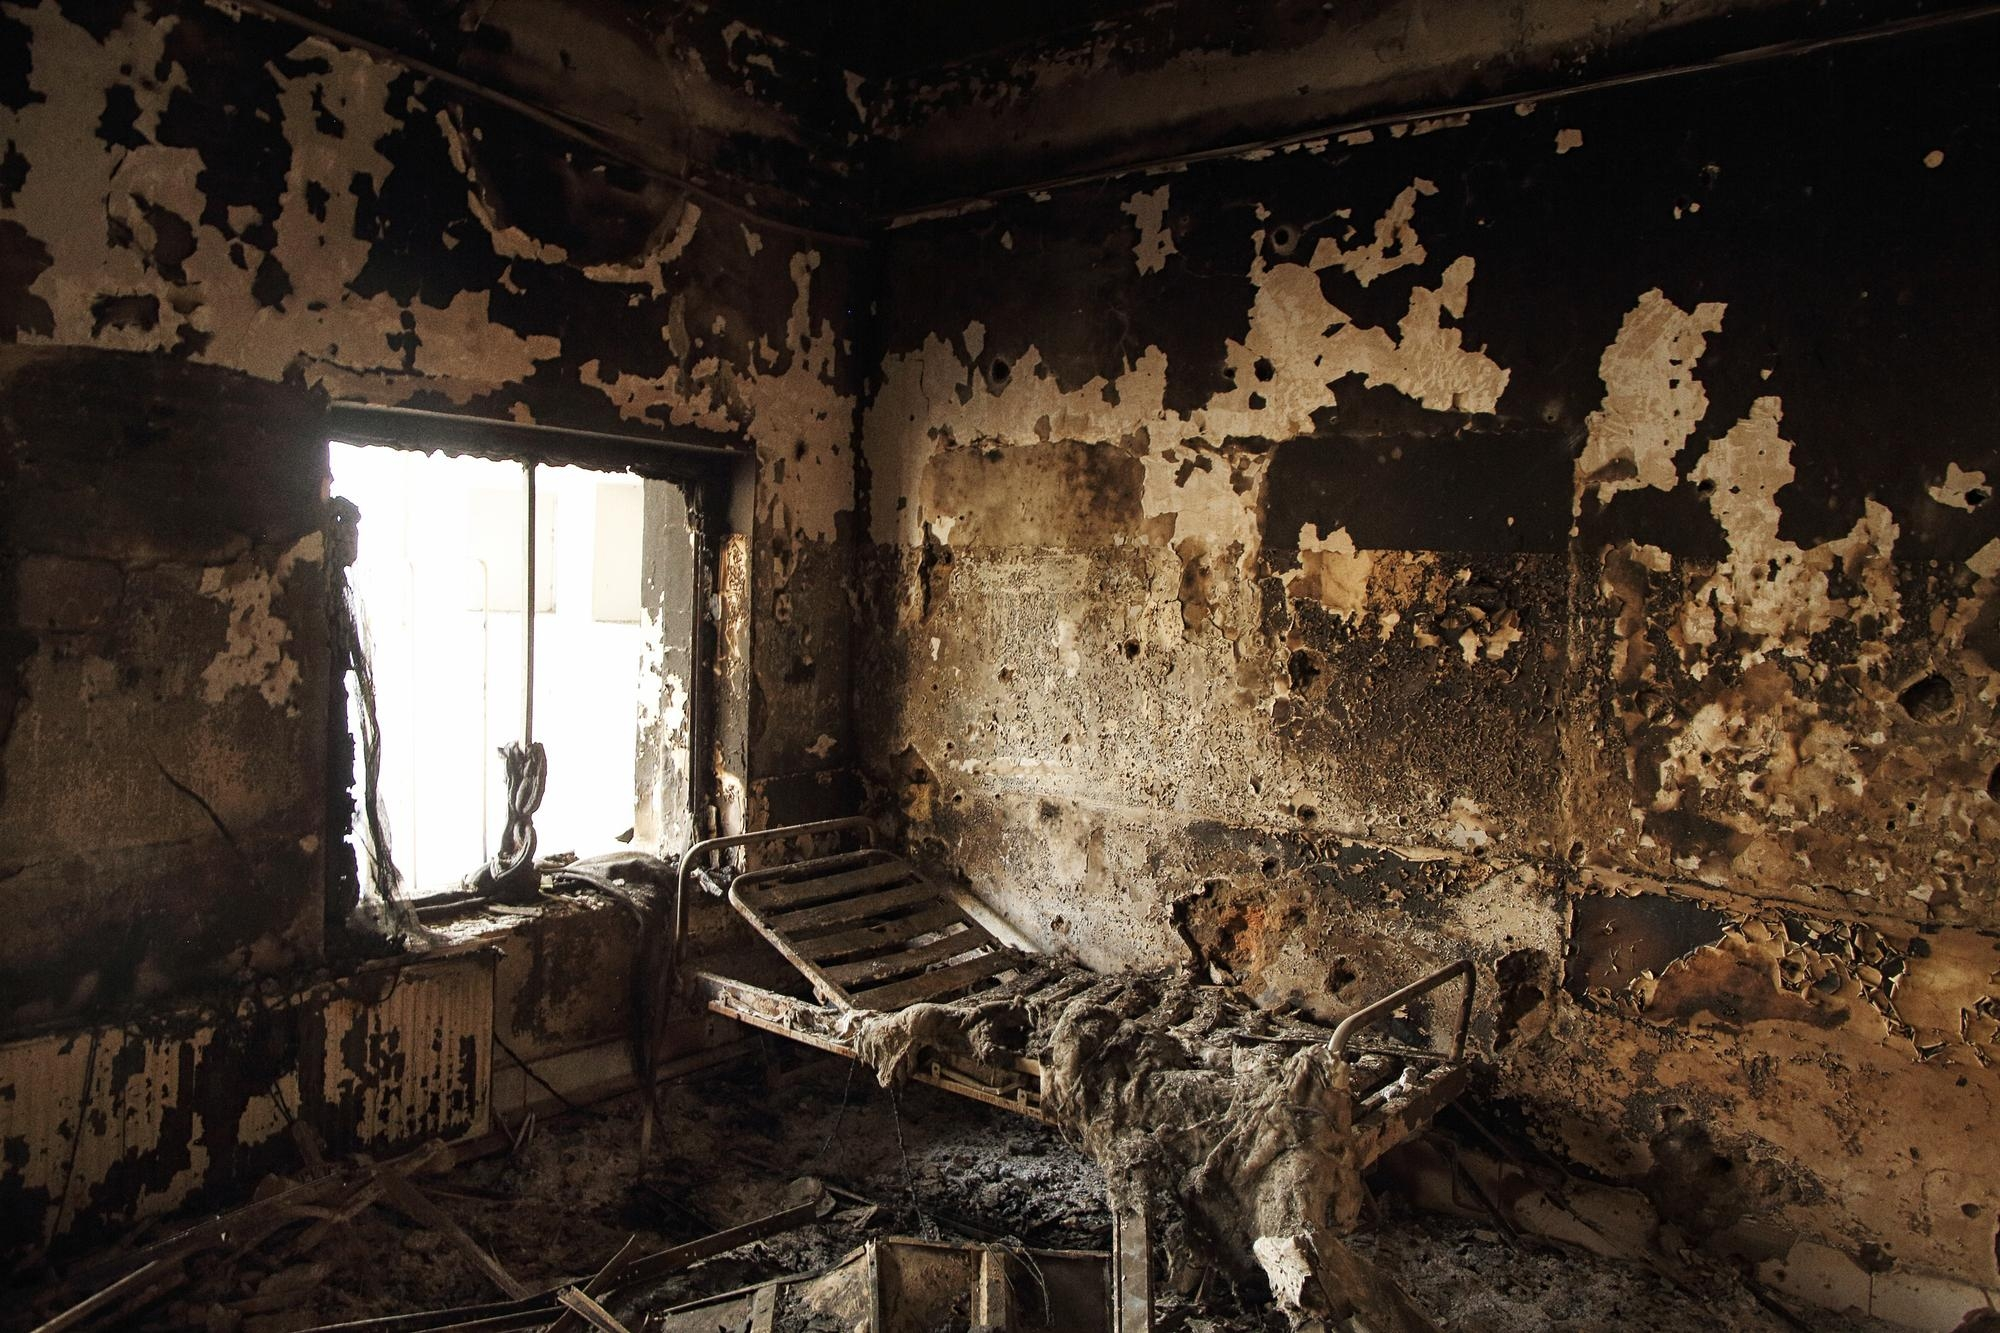 Kunduz Hospital after the U.S. bombing attack